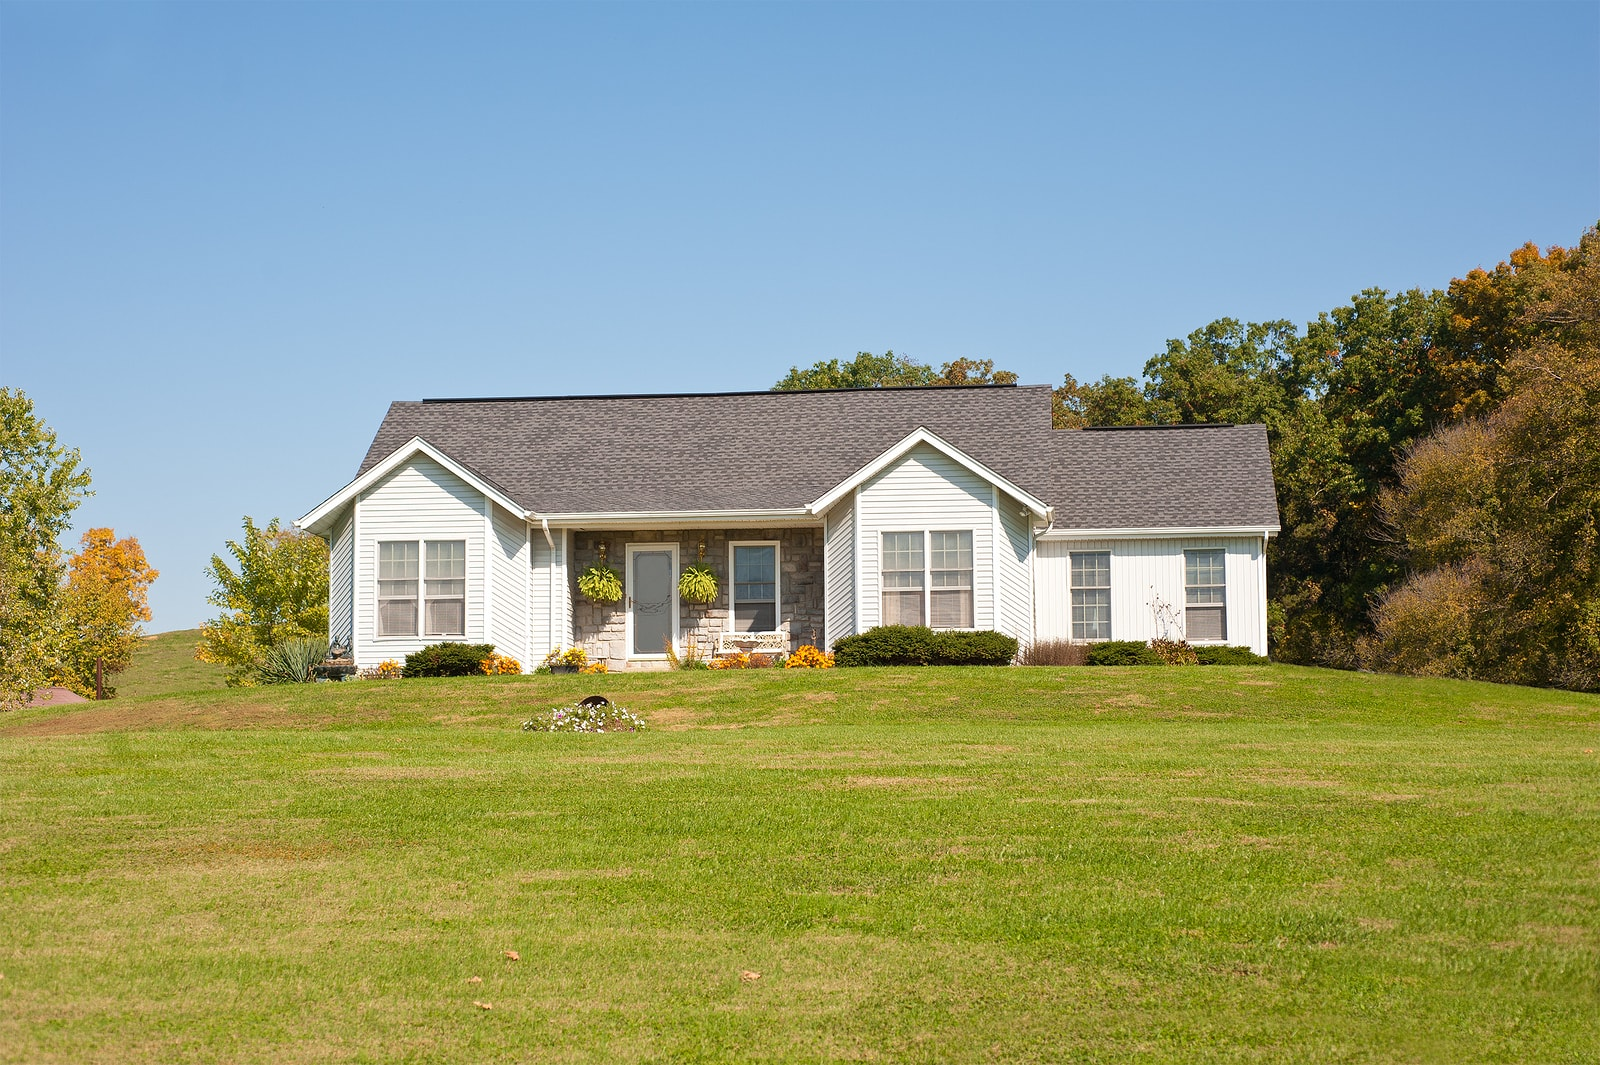 West hills homes for sale knoxville tn for West tn home builders